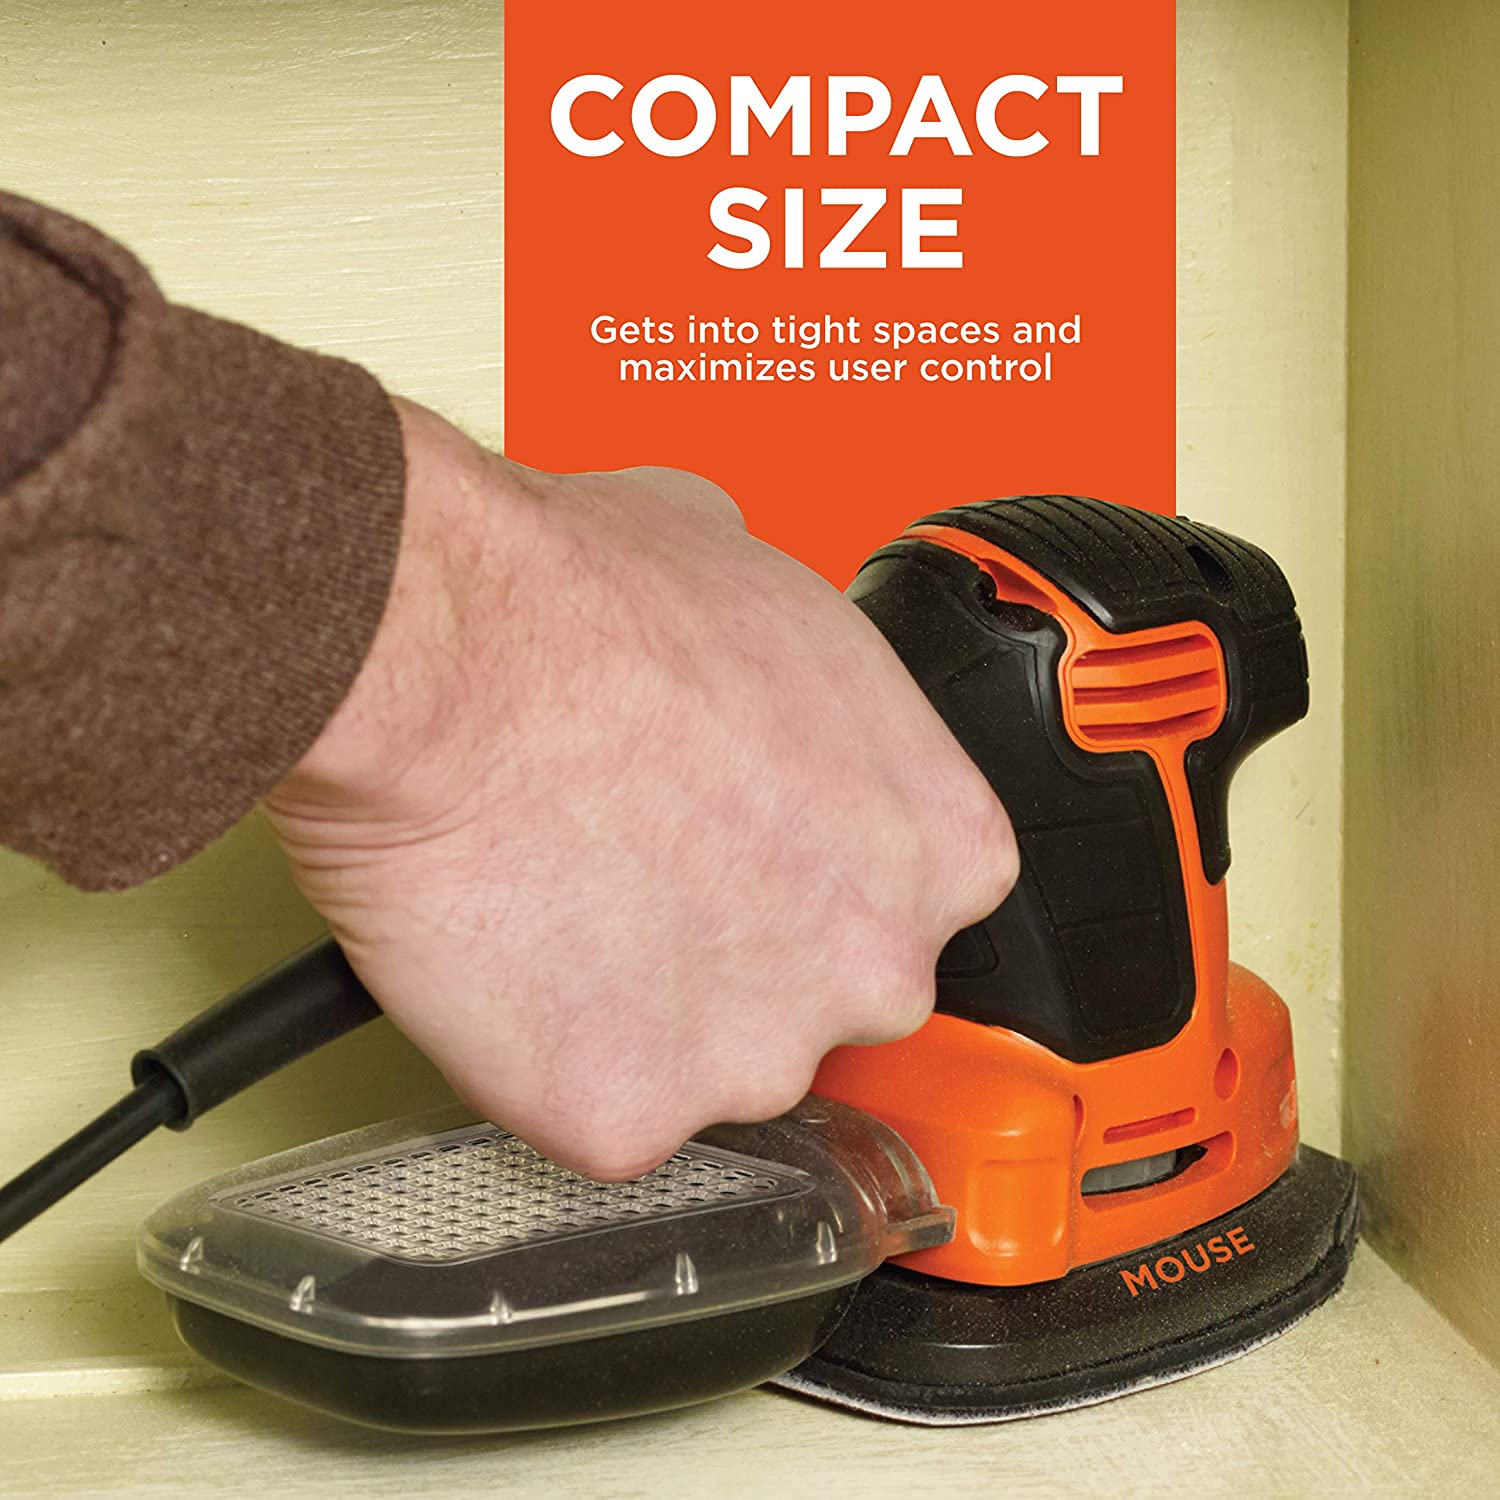 BLACK+DECKER BDEMS600 featured image 4